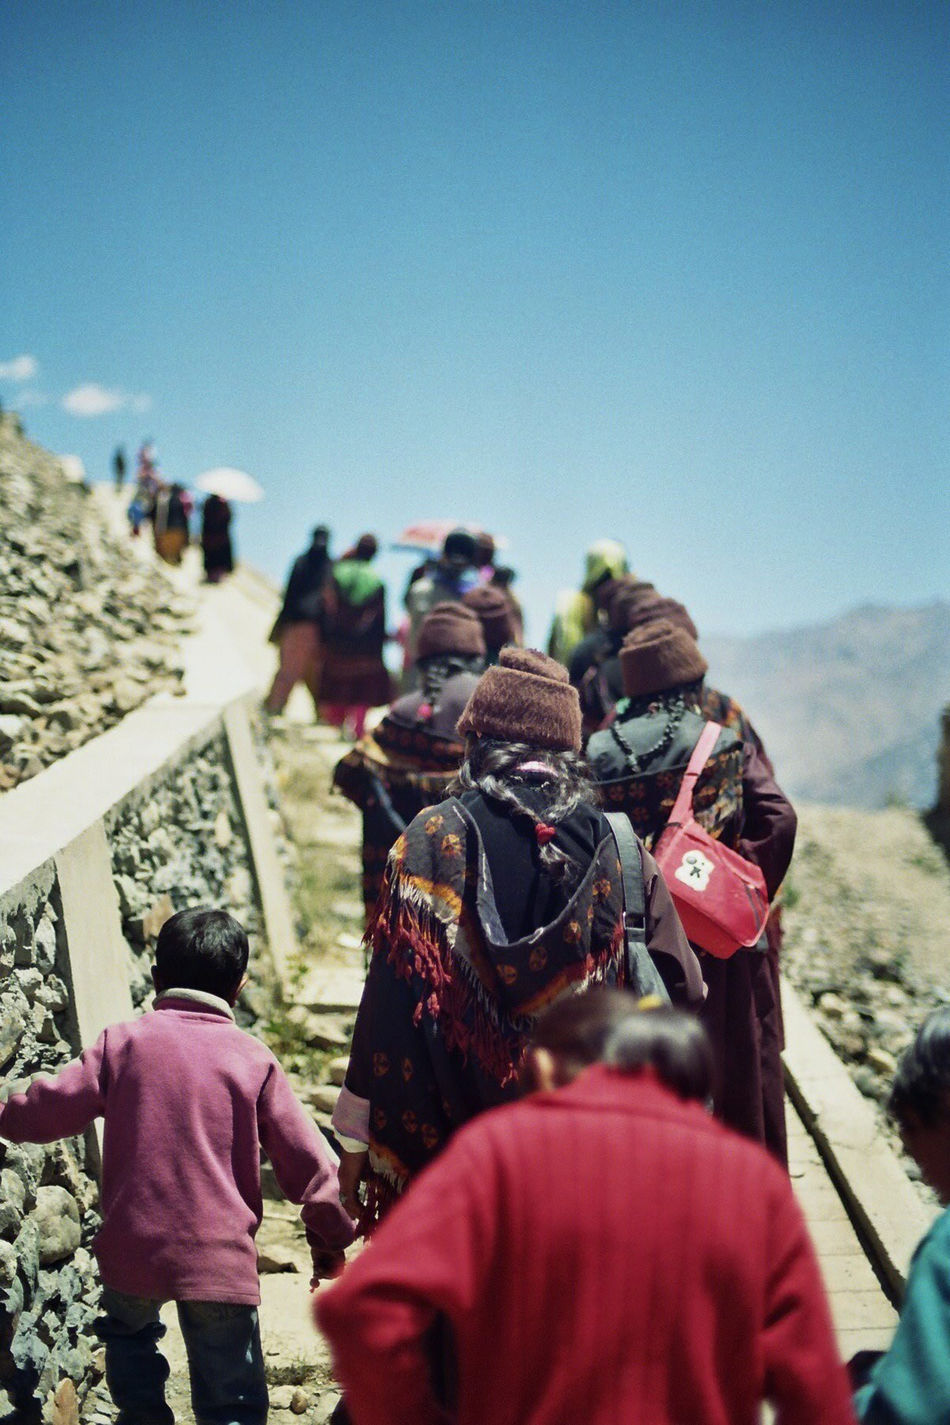 35mm Film Analogue Photography Animals Buddhism Dance Gelugpa India Ladakh Monks Tibetan  Tibetan Buddhism Vajrayana Yellow Hat Zanskar